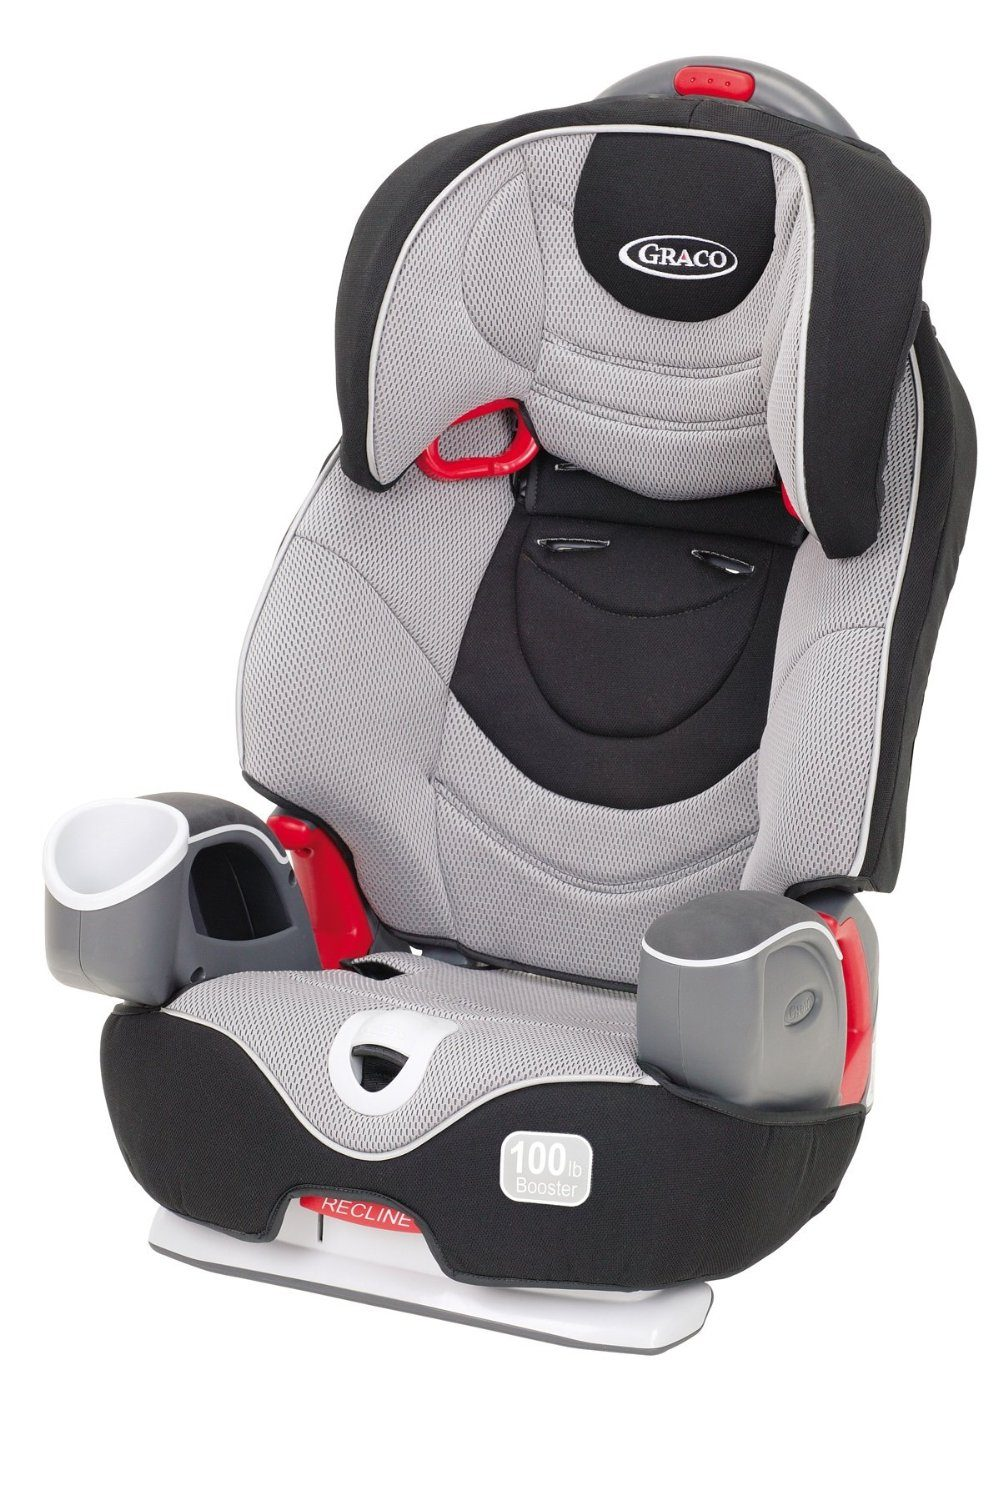 graco nautilus 3 in 1 car seat instructions. Black Bedroom Furniture Sets. Home Design Ideas